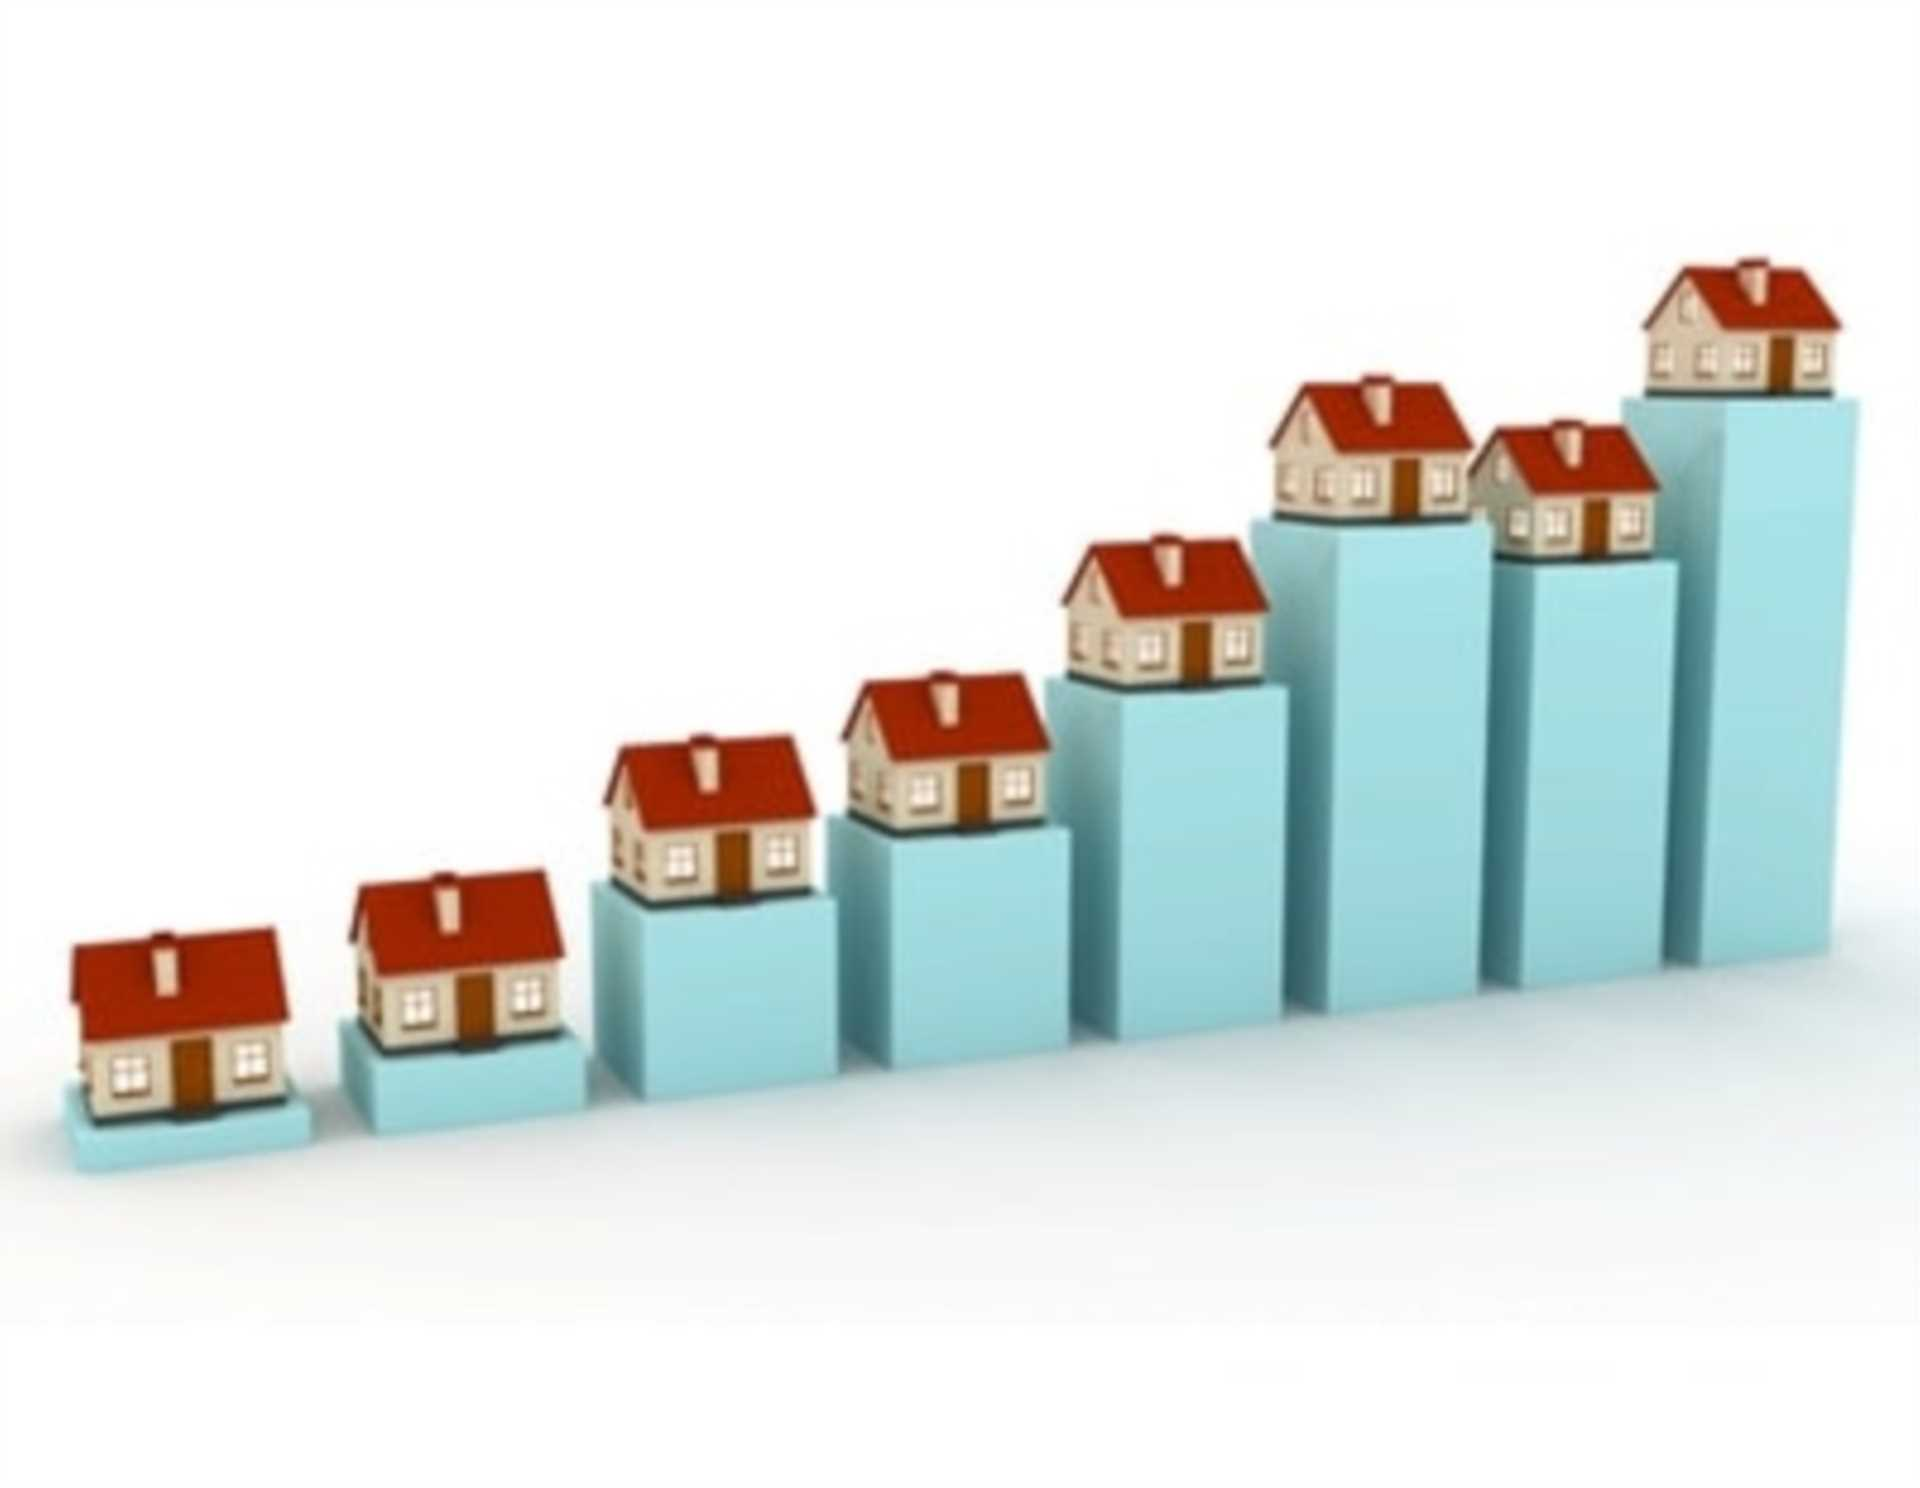 Stamp duty reprieve for landlords expanding portfolios right now